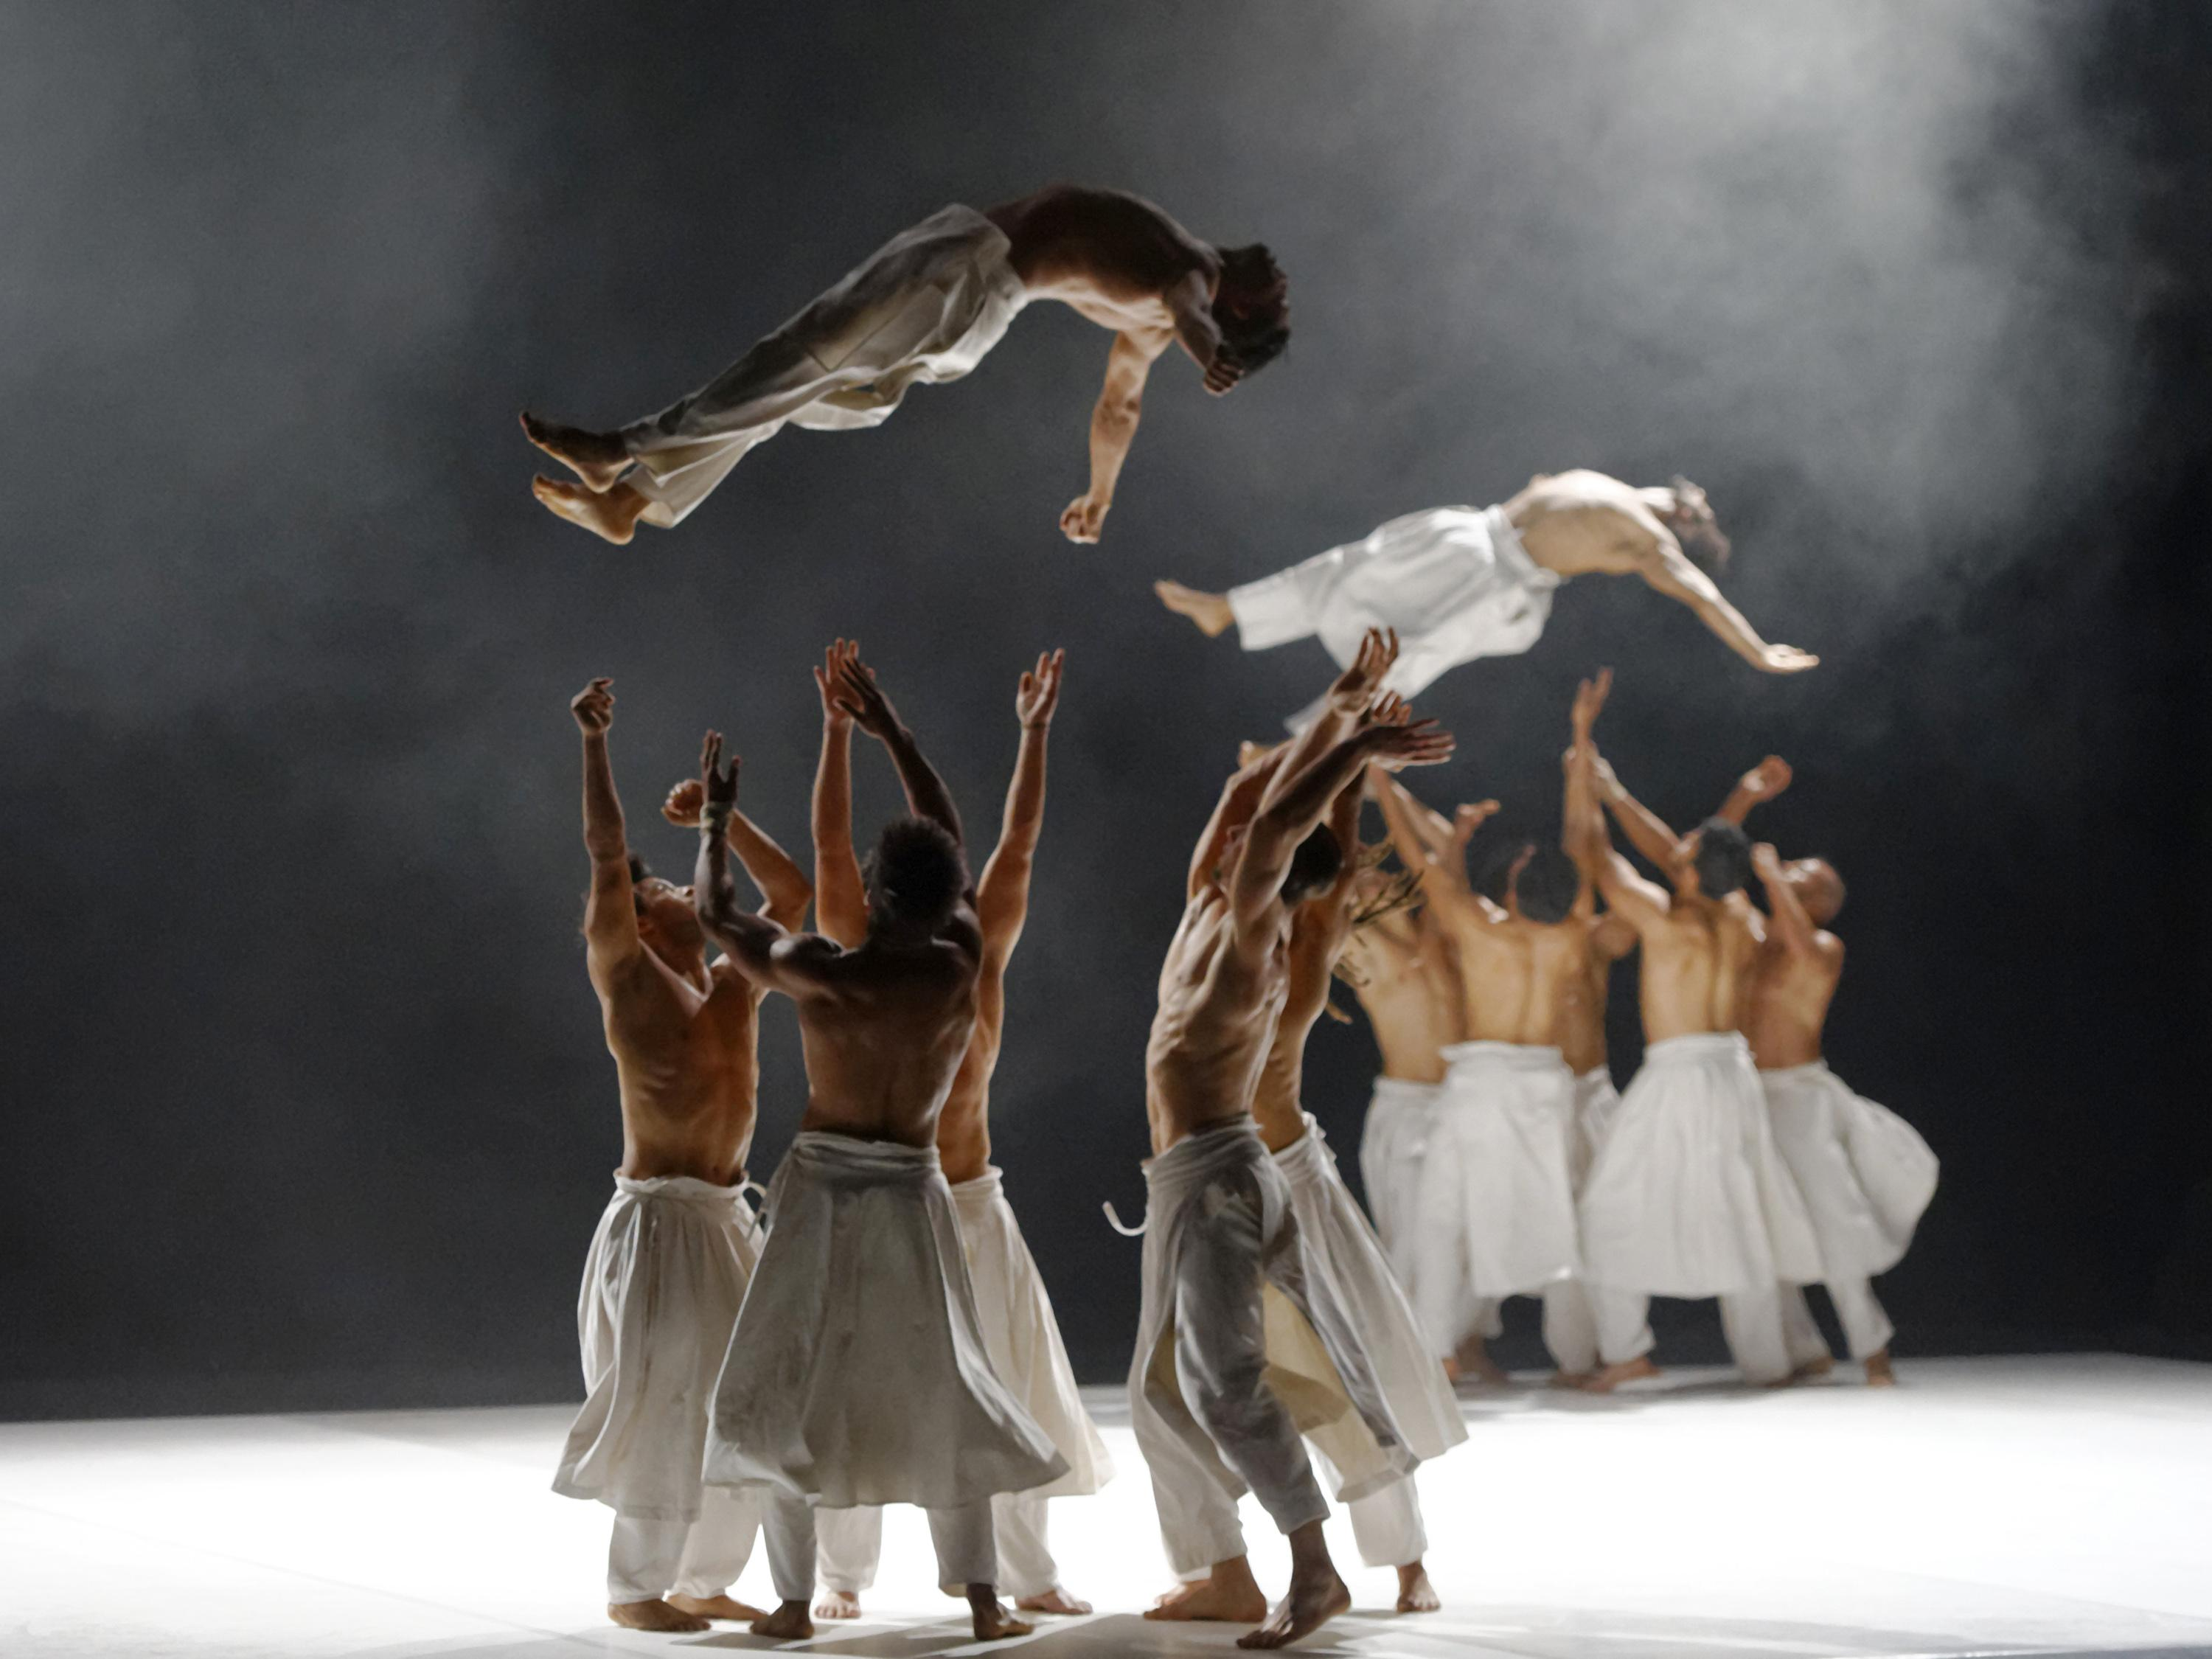 Dancers soar in the air as groups of fellow troupe member wait to catch them